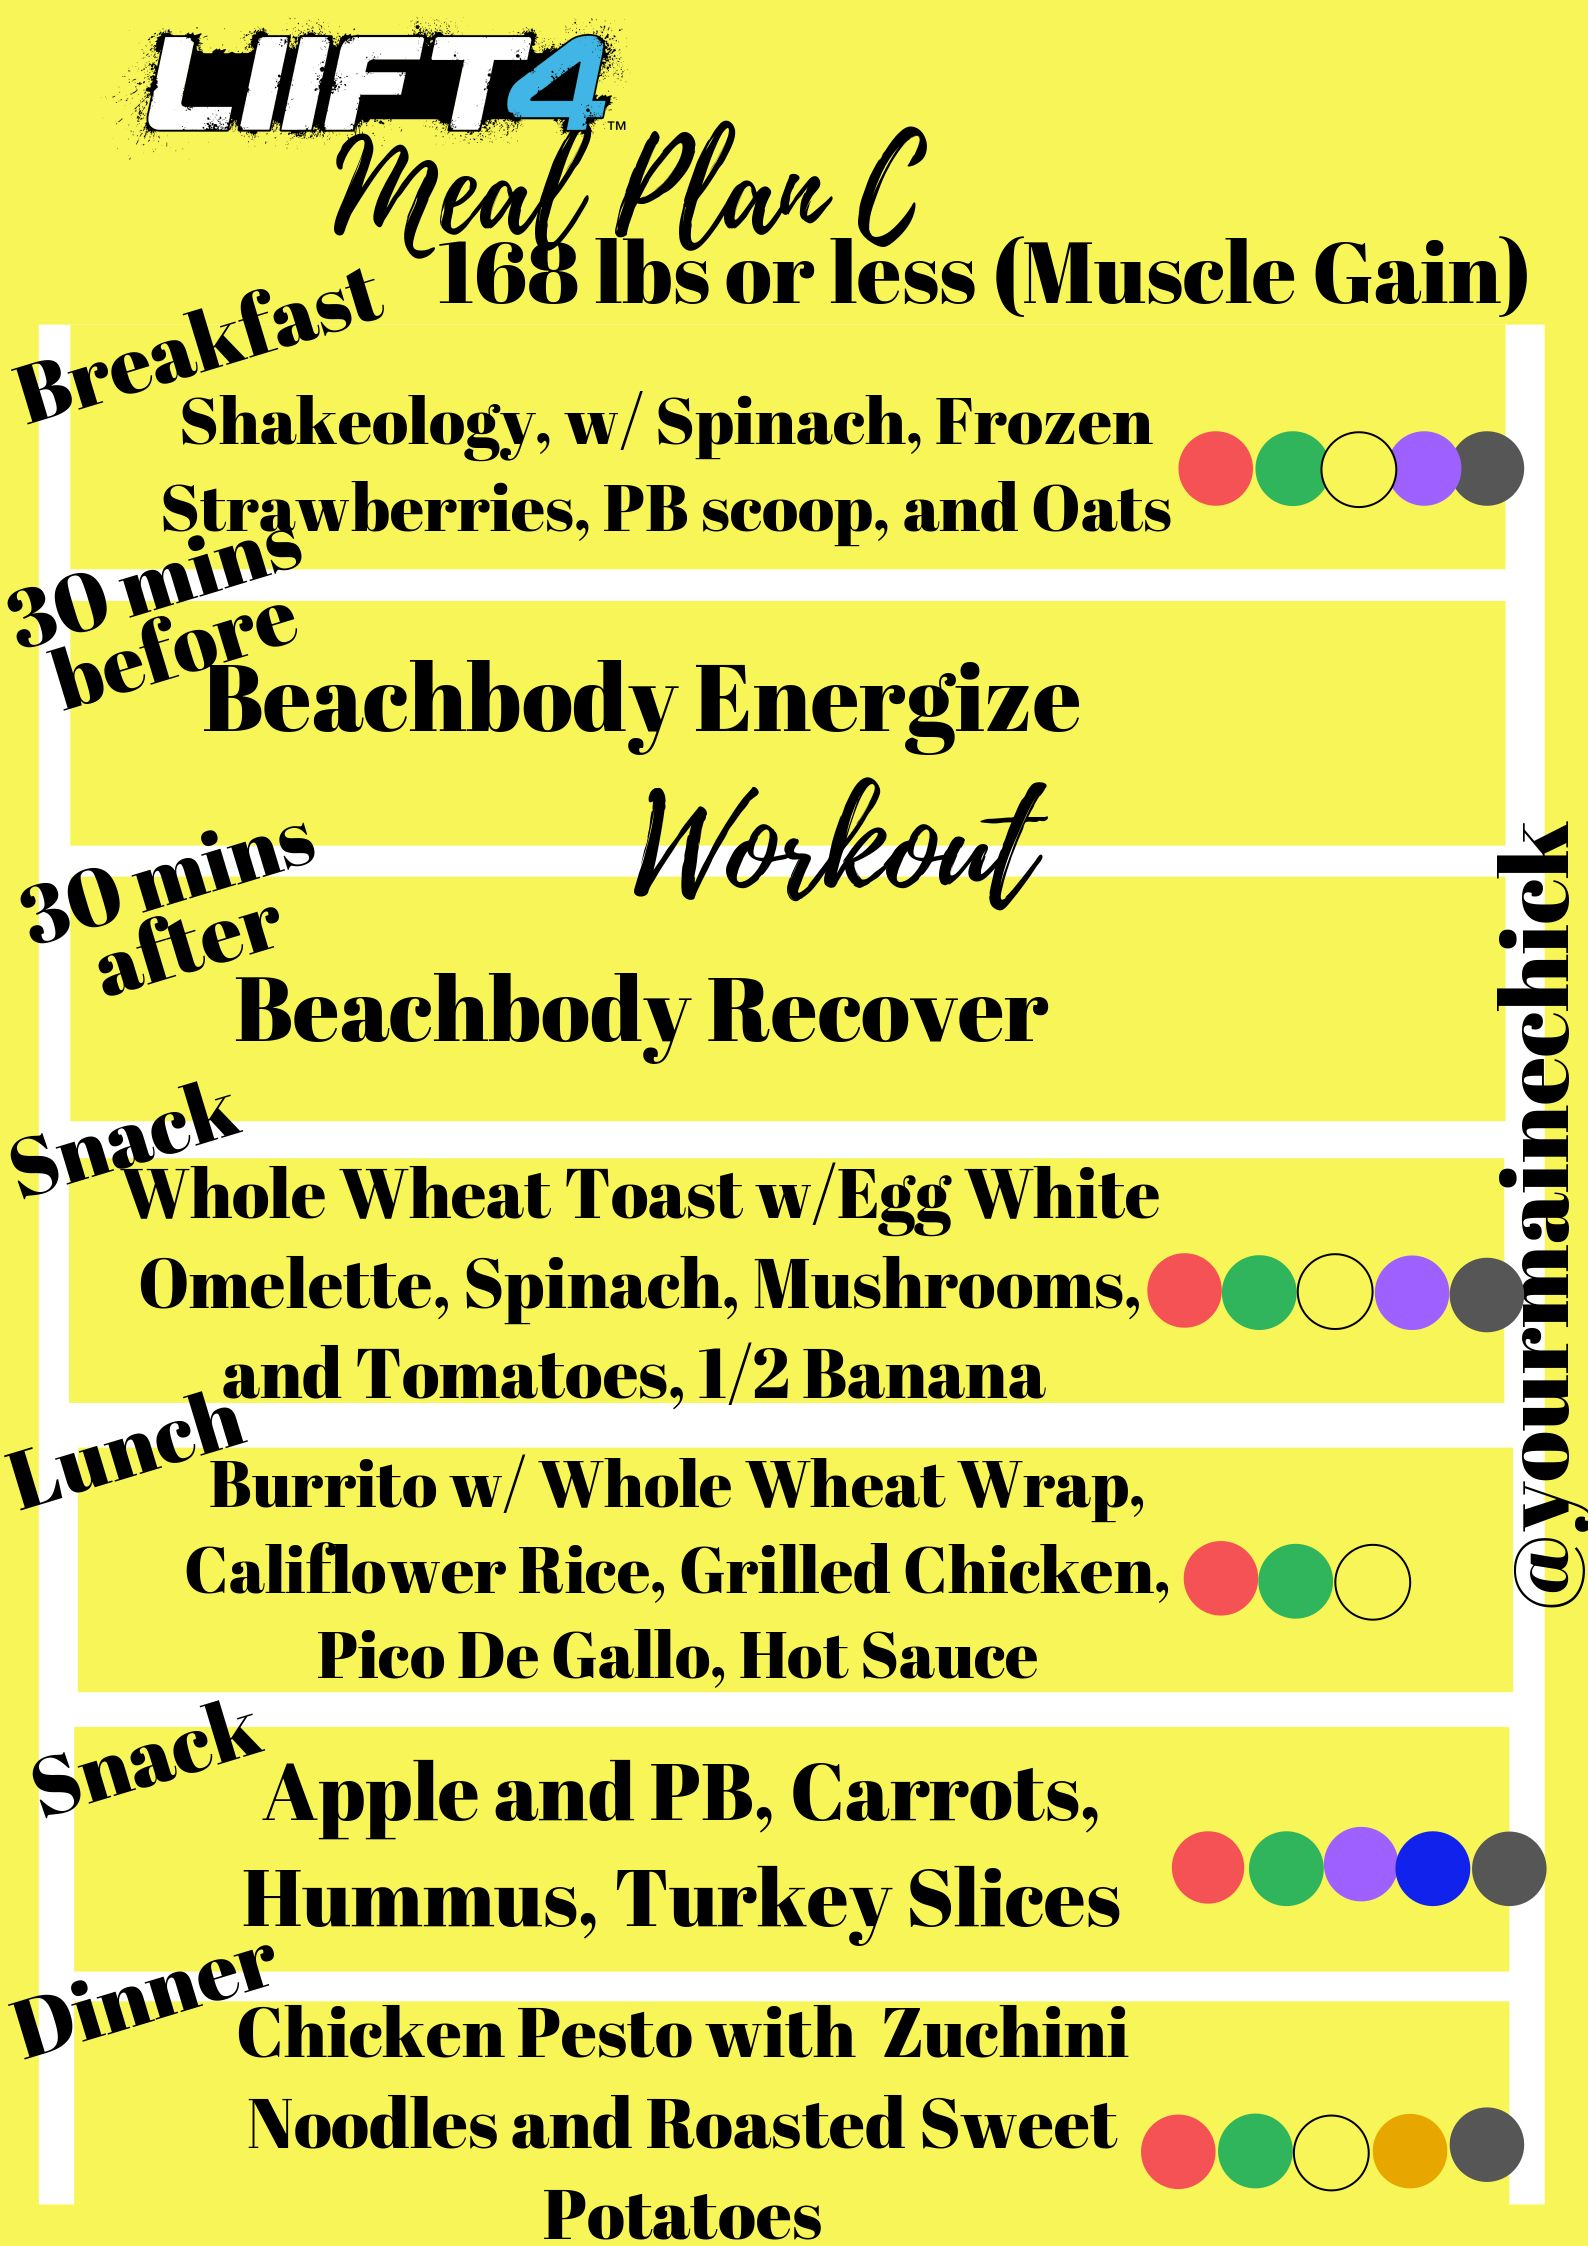 liift4 meal plan c muscle gain 168 lbs or less with beachbodyperformance beachbody mealplan. Black Bedroom Furniture Sets. Home Design Ideas